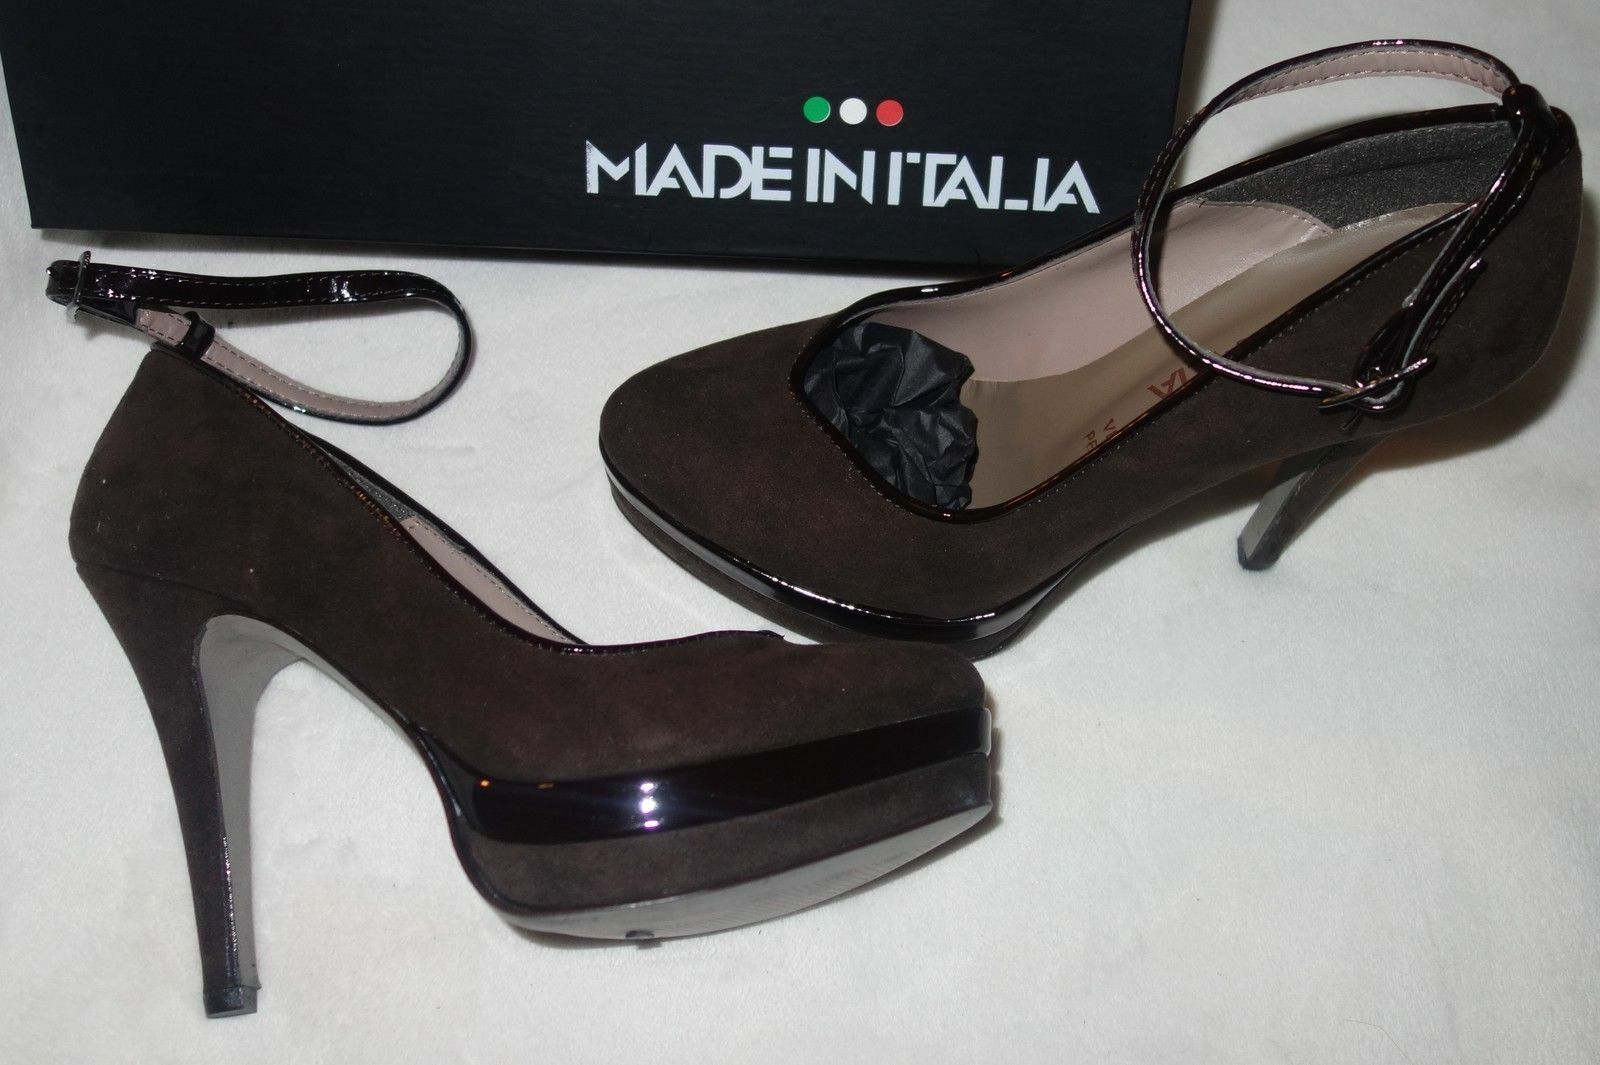 Made in Italia Platform Pumps dark brown Suede shoes  Size 36 US 7 New